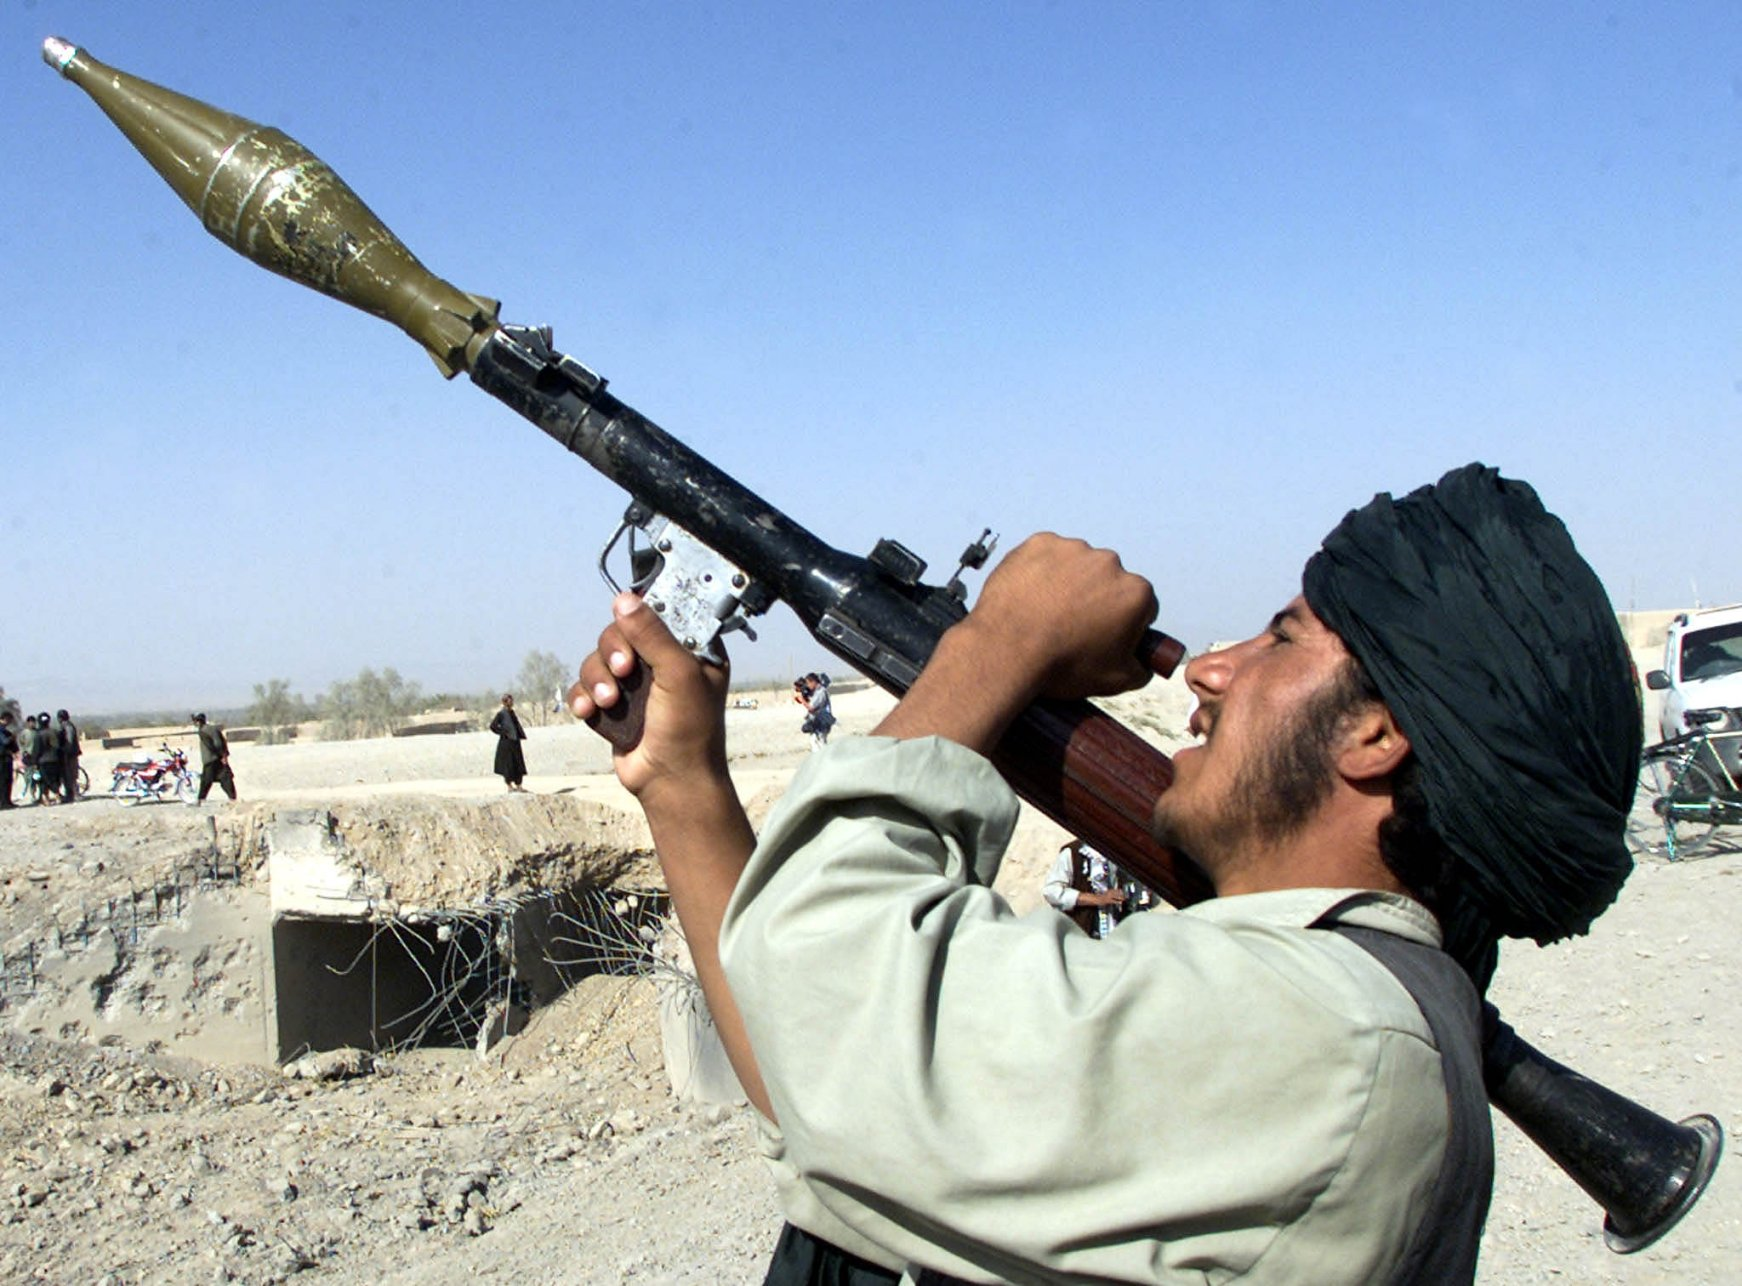 Taliban tar alleged thief, fire at crowds and walk streets with rocket launchers